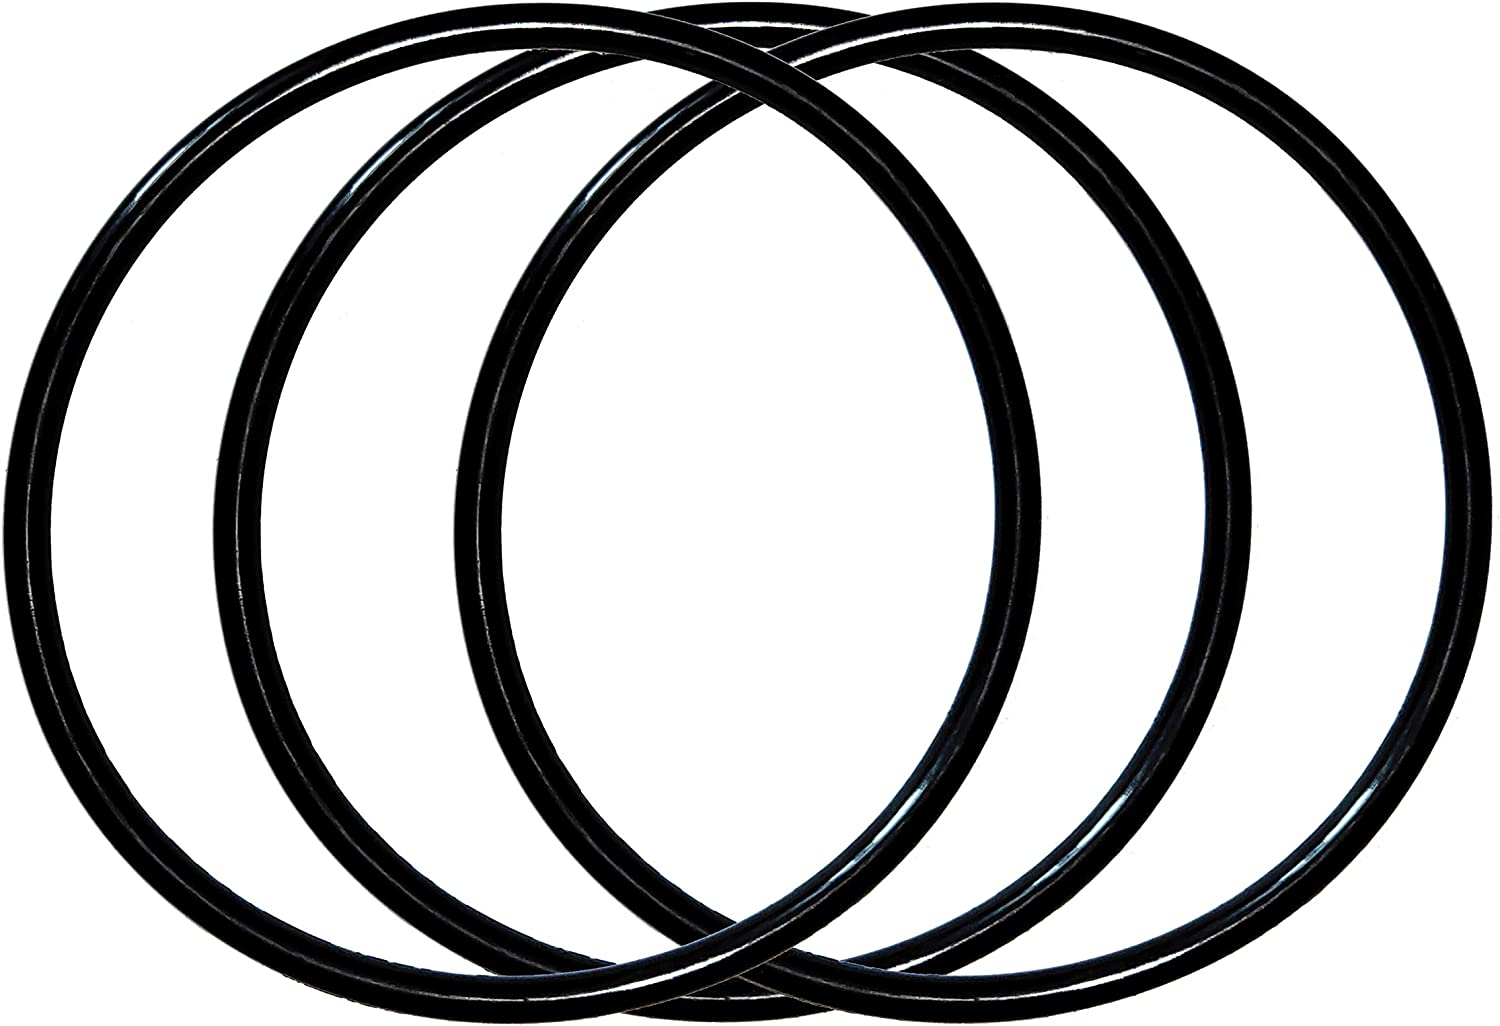 WS03X10001 O-RING For GE 2.5 in Smart water Filter housing (3/Pack)